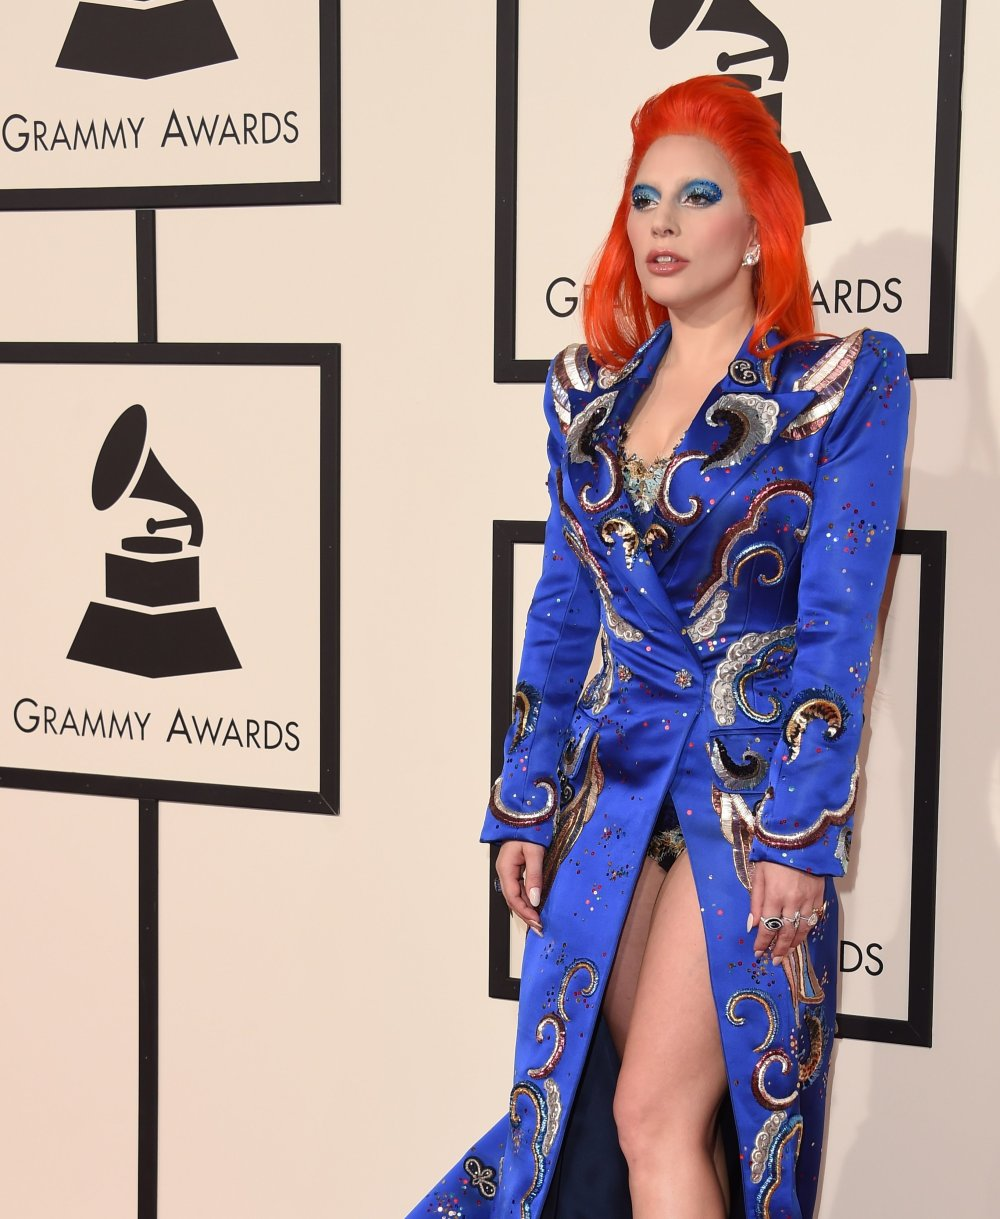 lady-gaga-grammys-red-carpet-2016.jpg